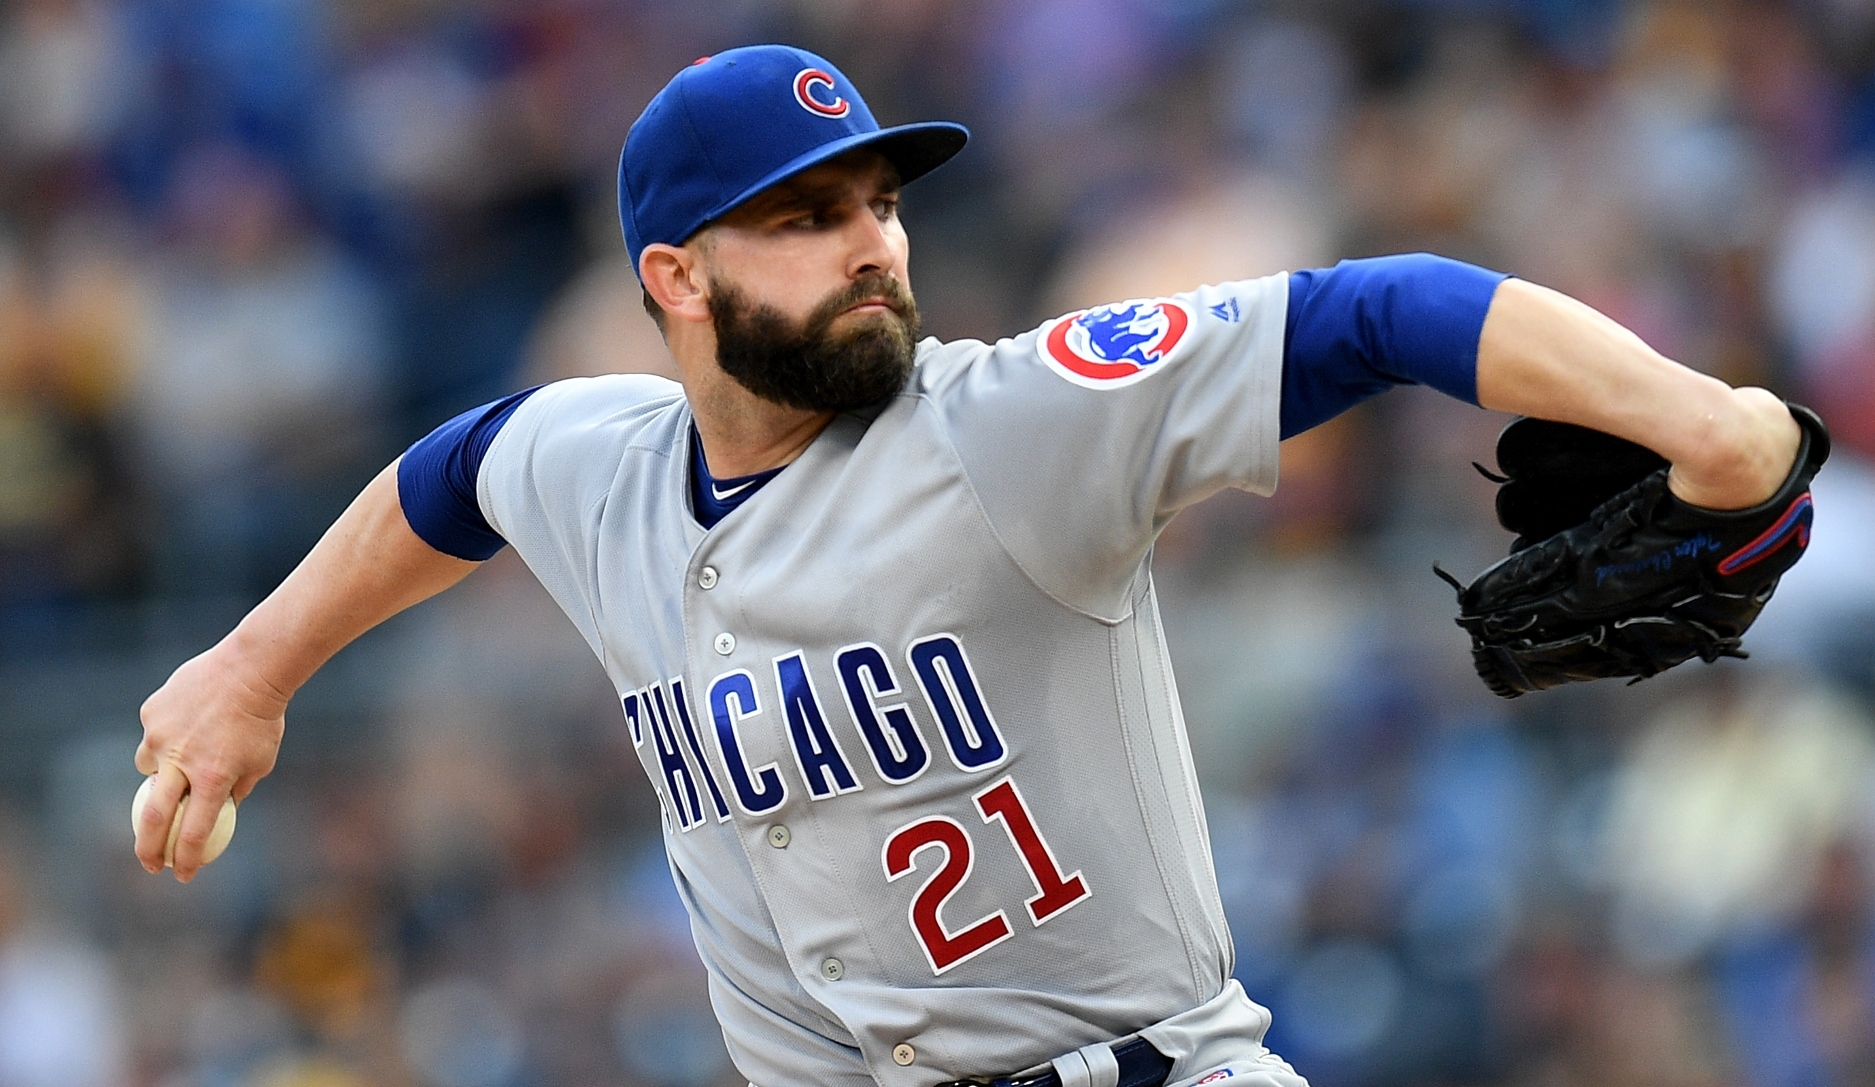 Tyler Chatwood To Start For Cubs On Thursday